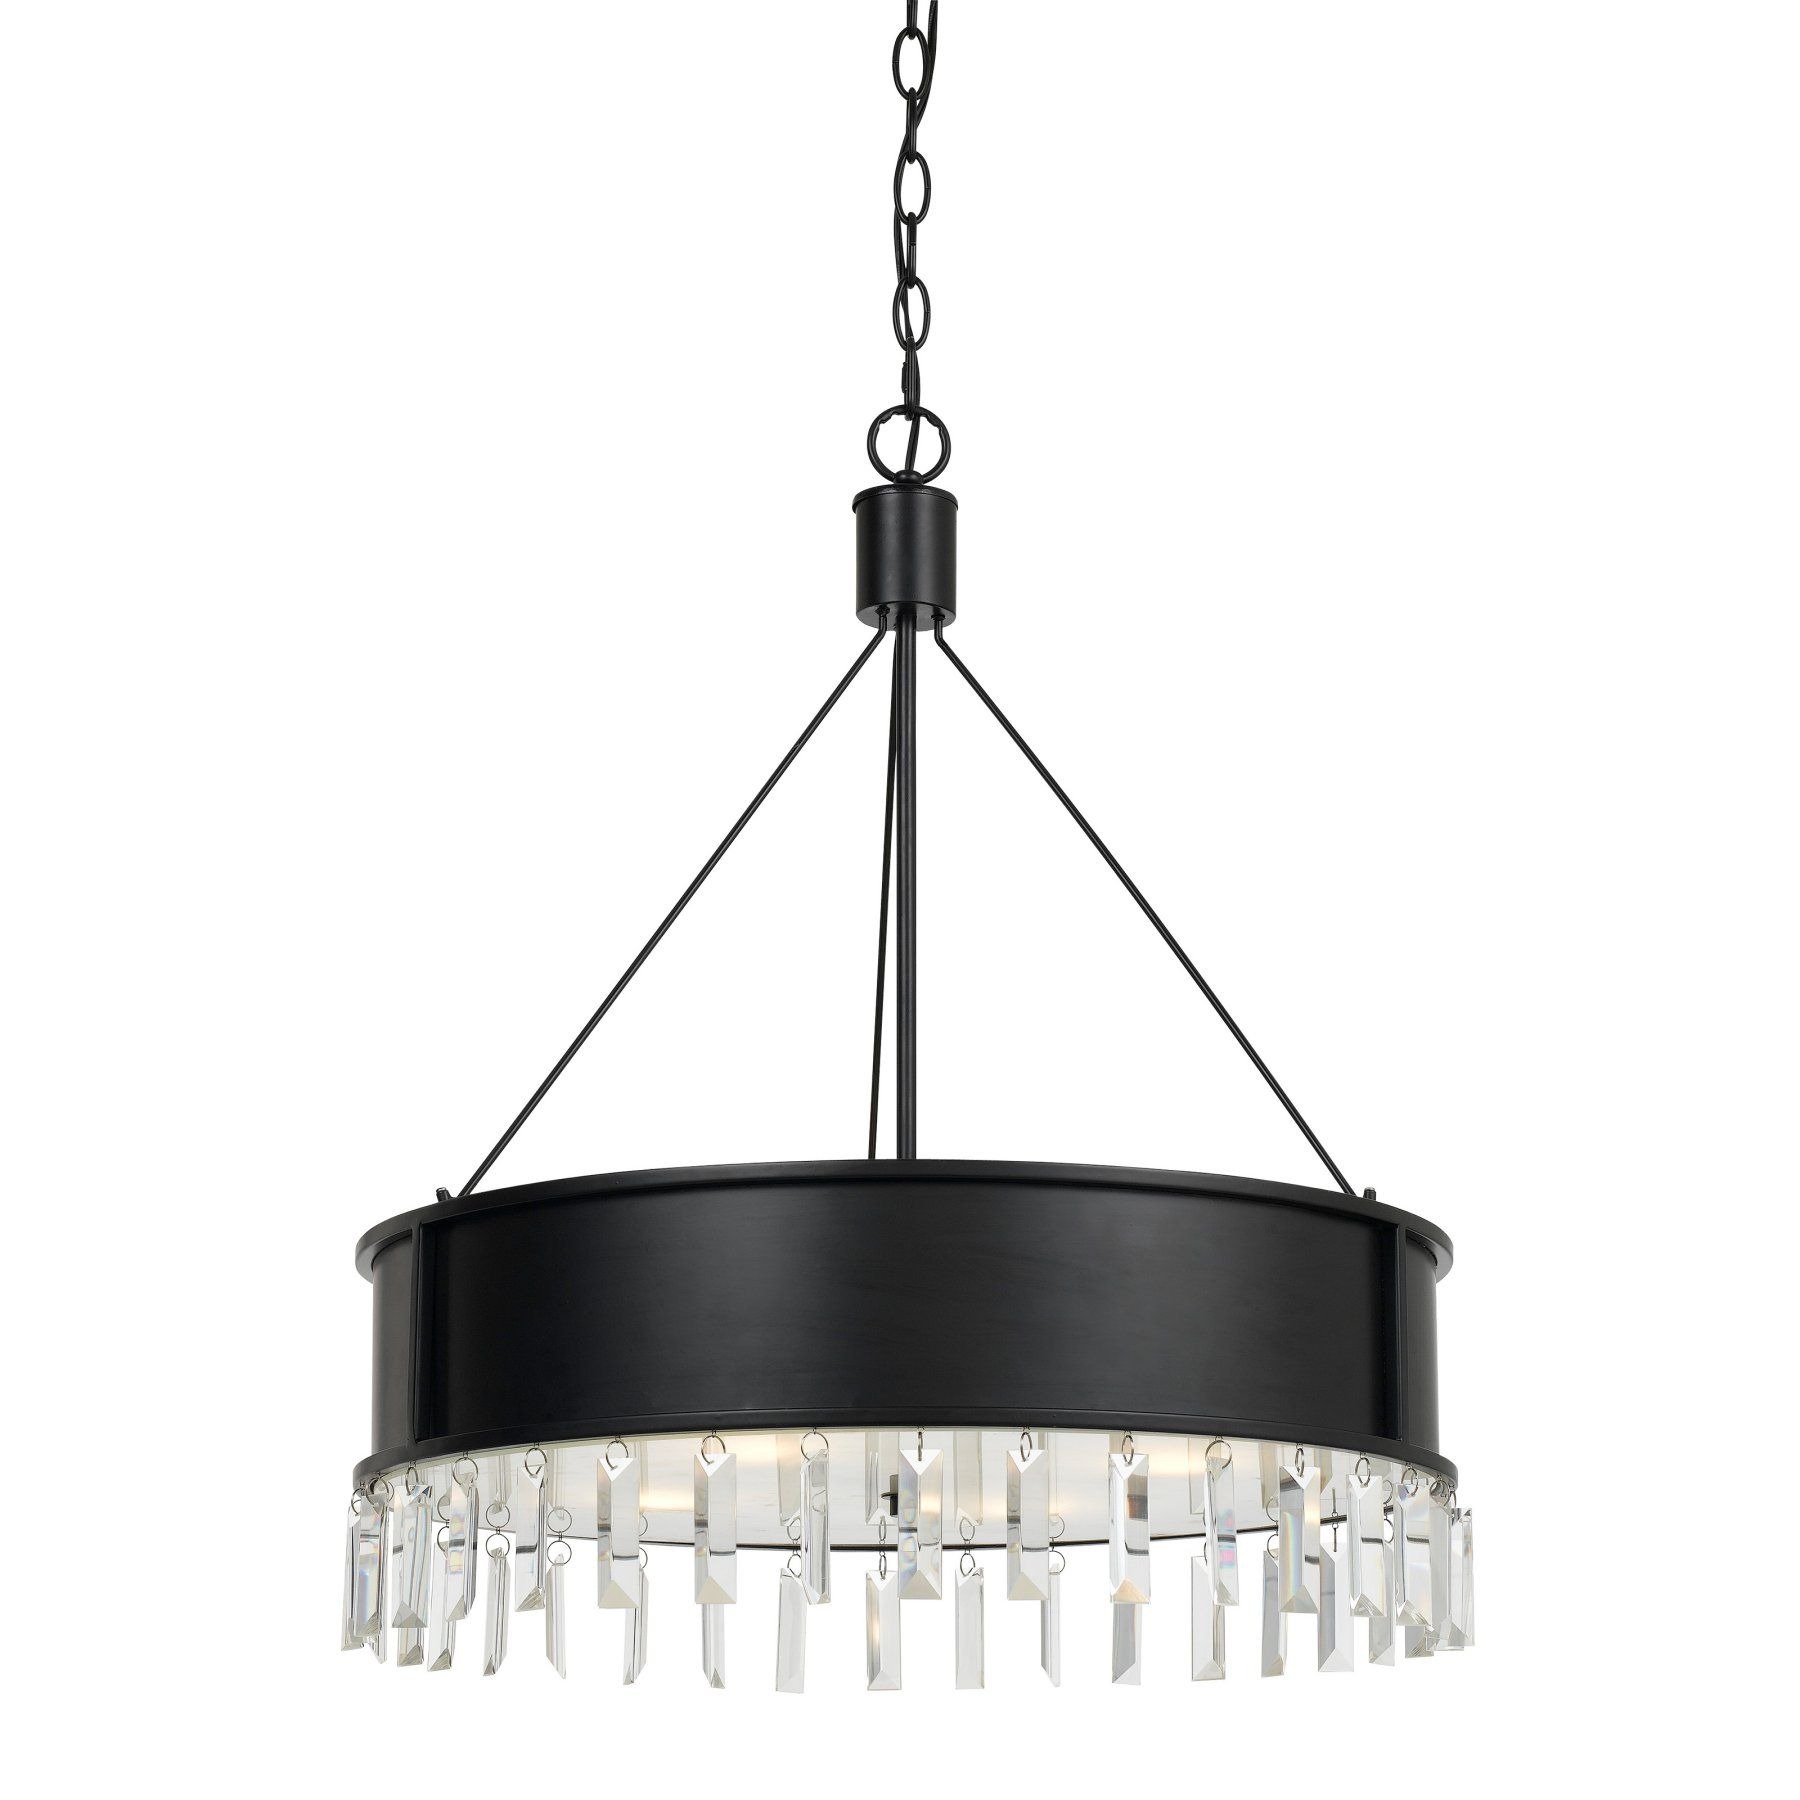 Cal Lighting Roby Fx 3611 4 Chandelier  Fx 3611 4